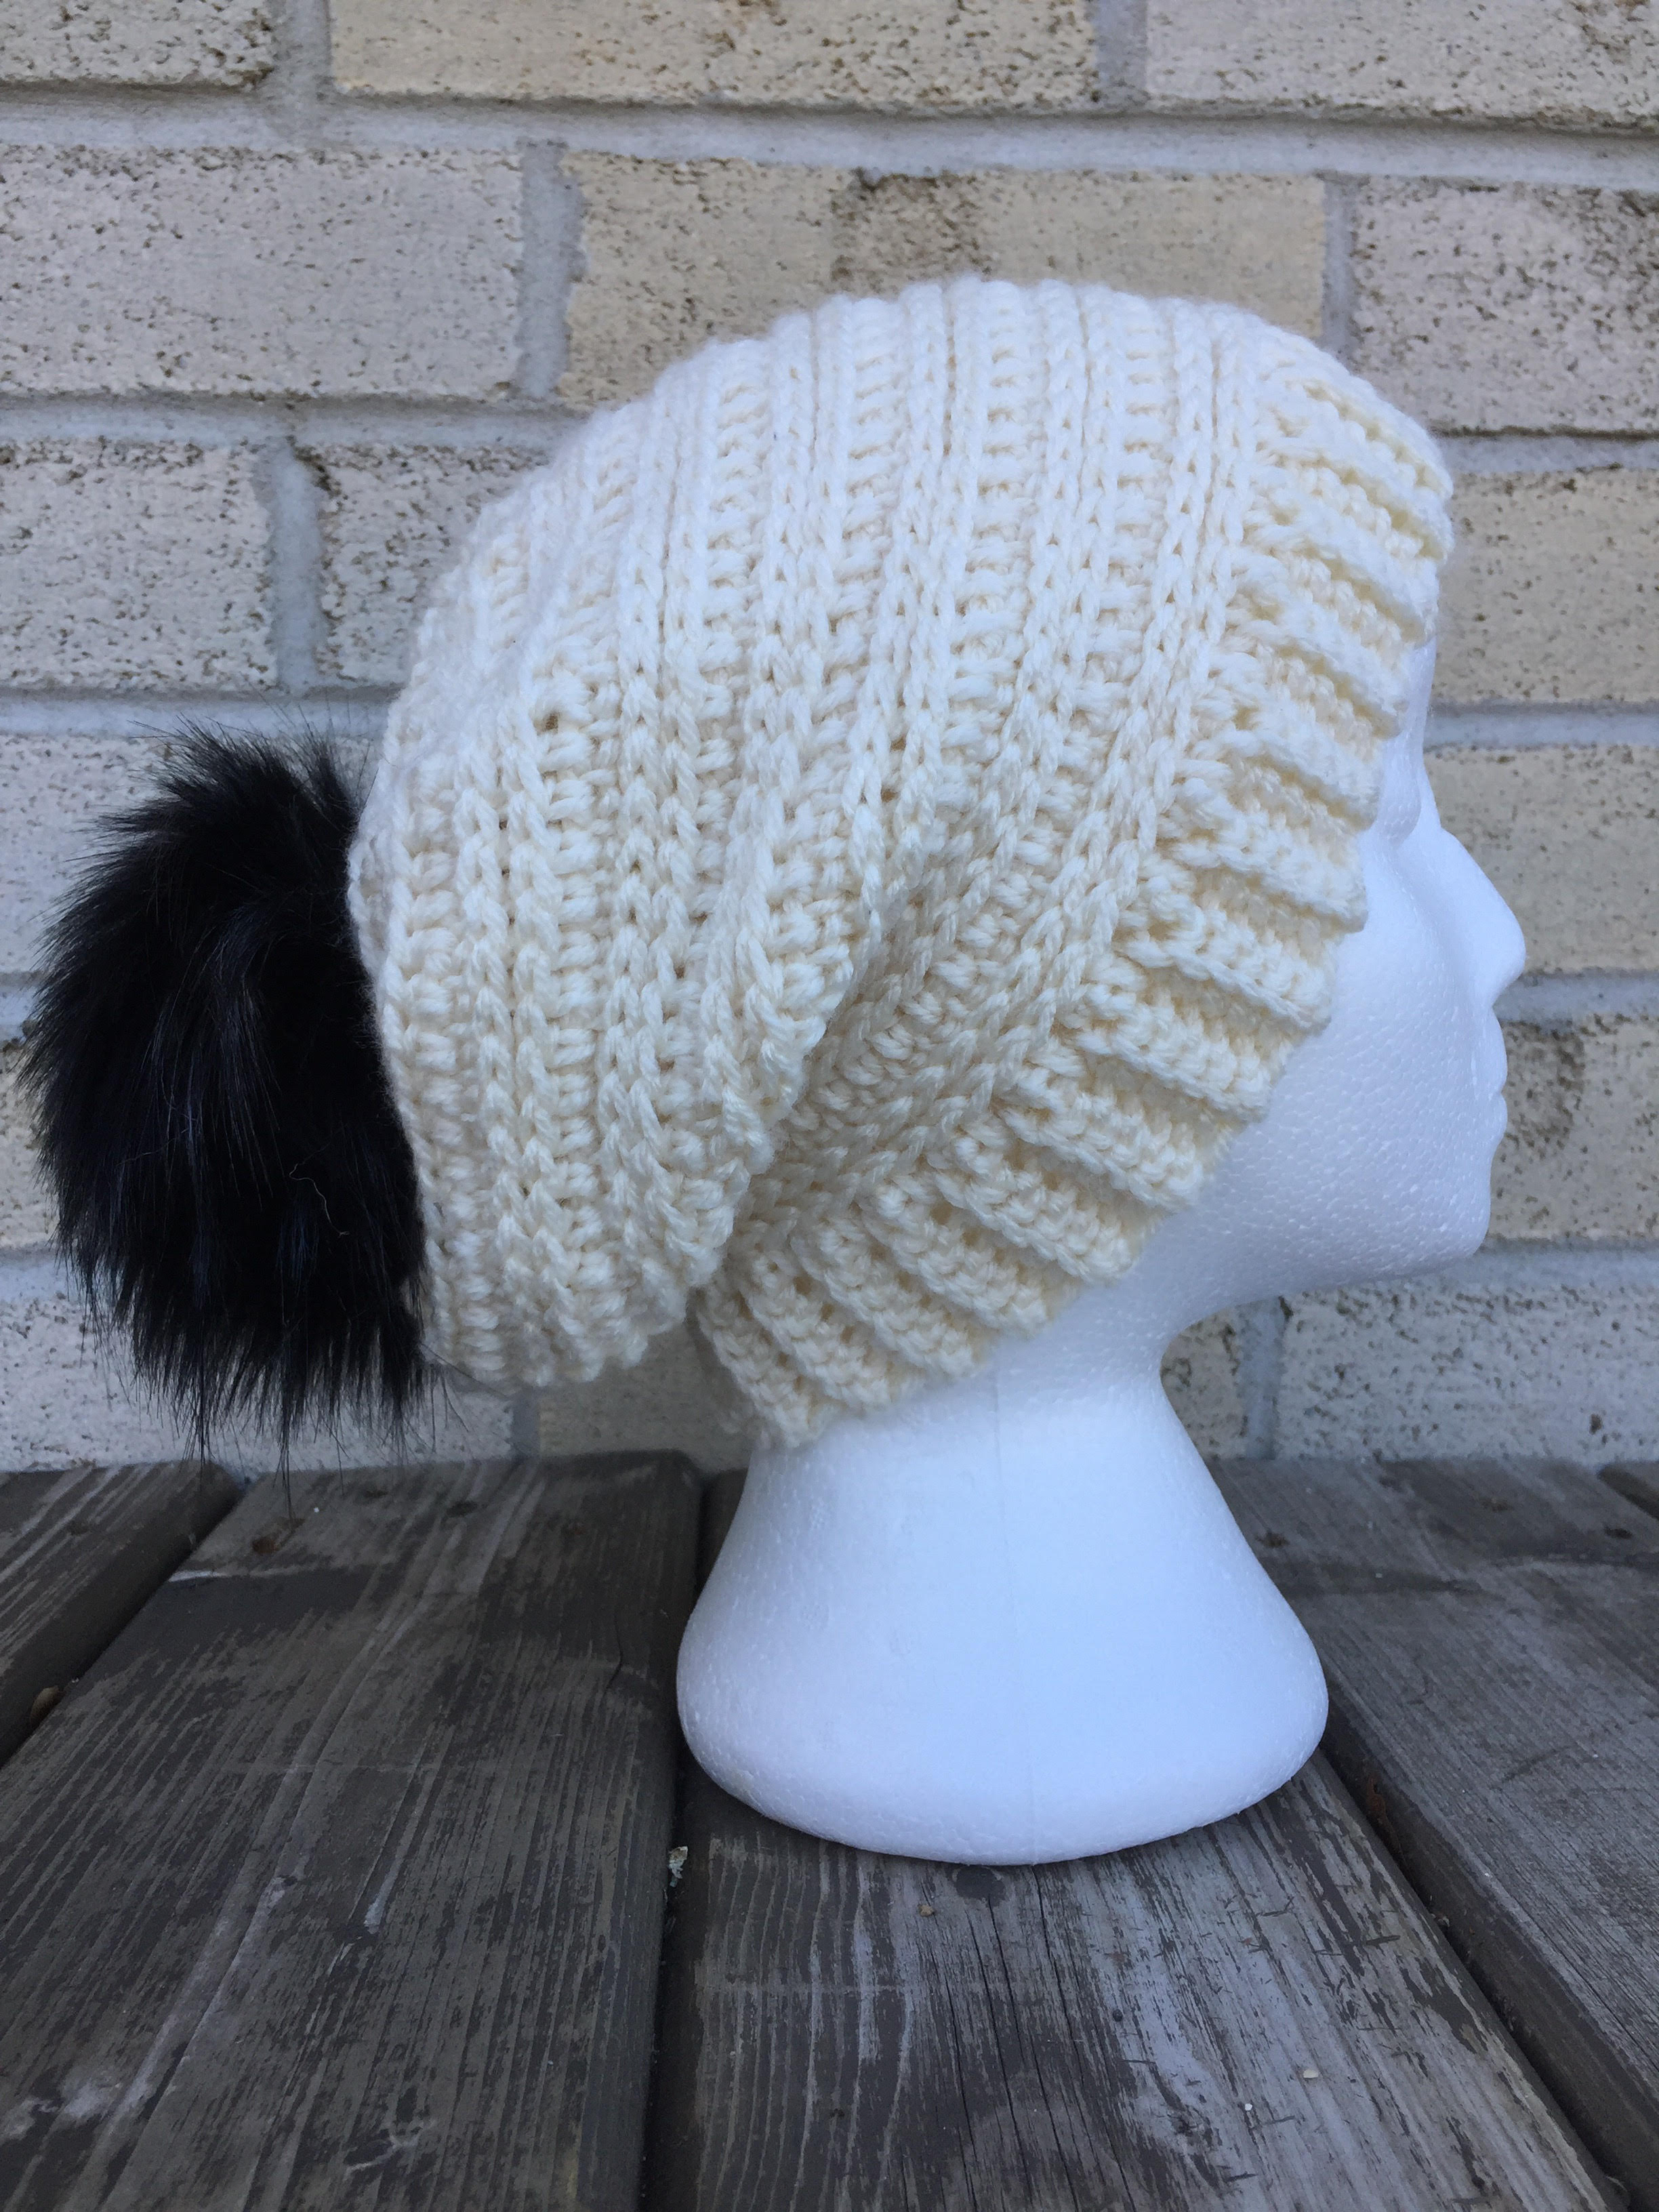 d37043f8e8a612 Snowy Day Toque, Messy Bun and Slouch Hat - A Free Crochet Pattern | Rich  Textures Crochet